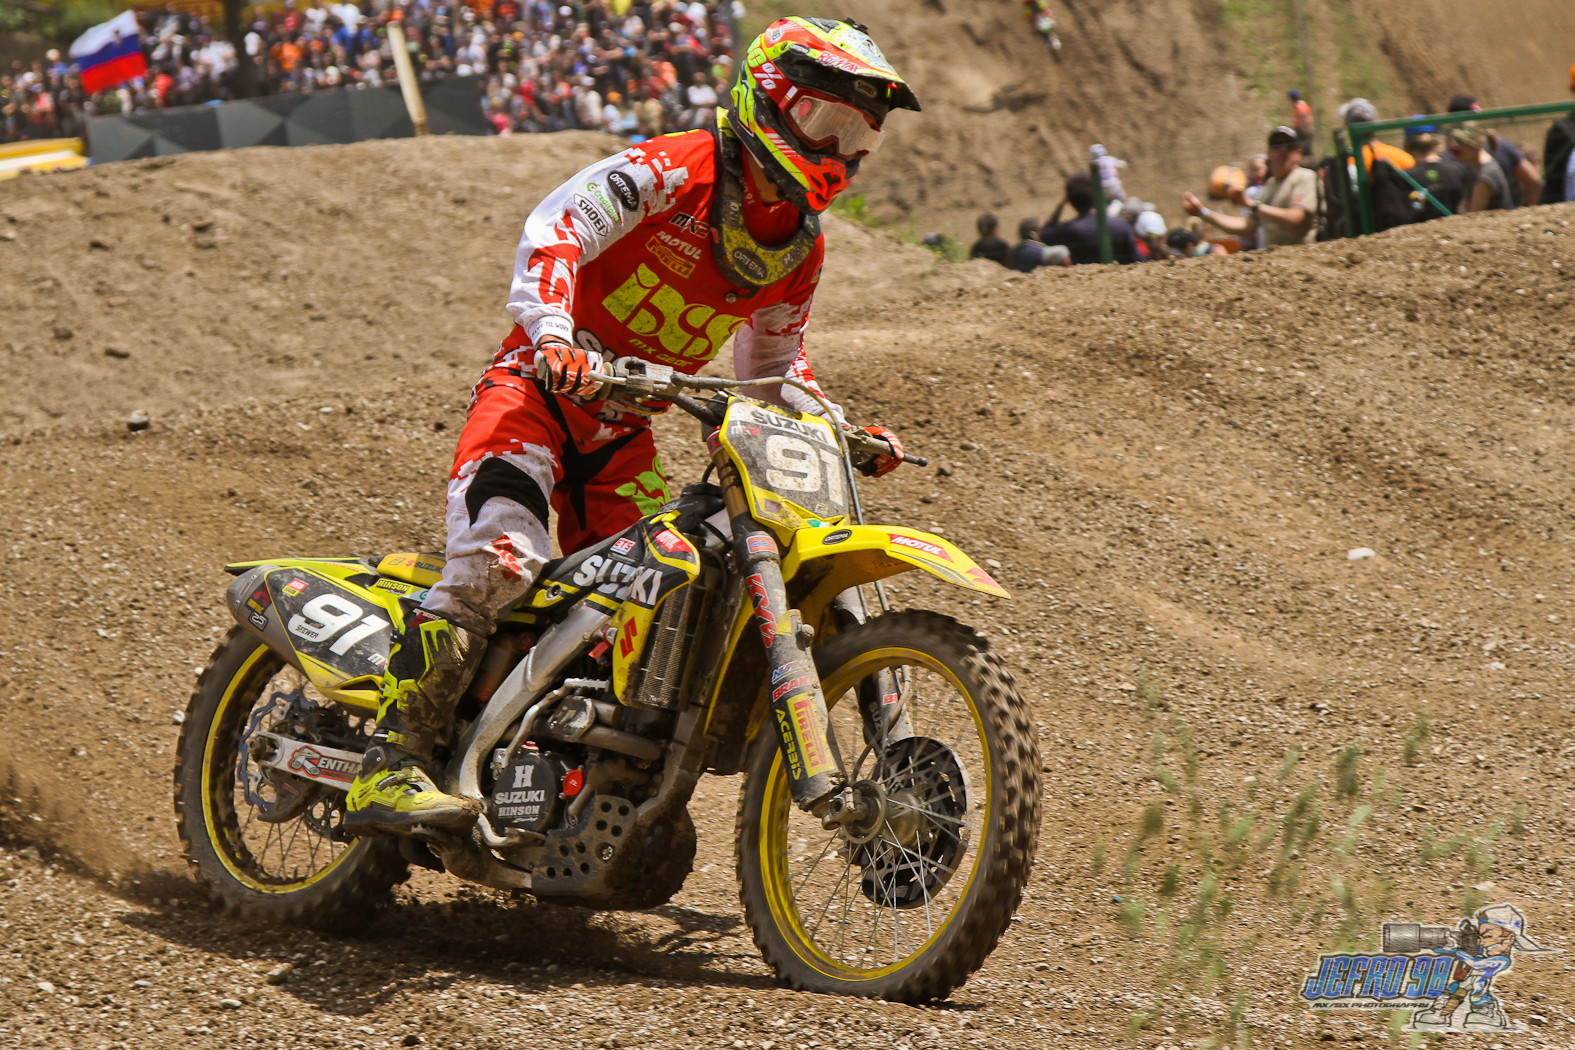 Jeremy Seewer - Photo Gallery: MXGP of Trentino, Italy - Motocross Pictures - Vital MX